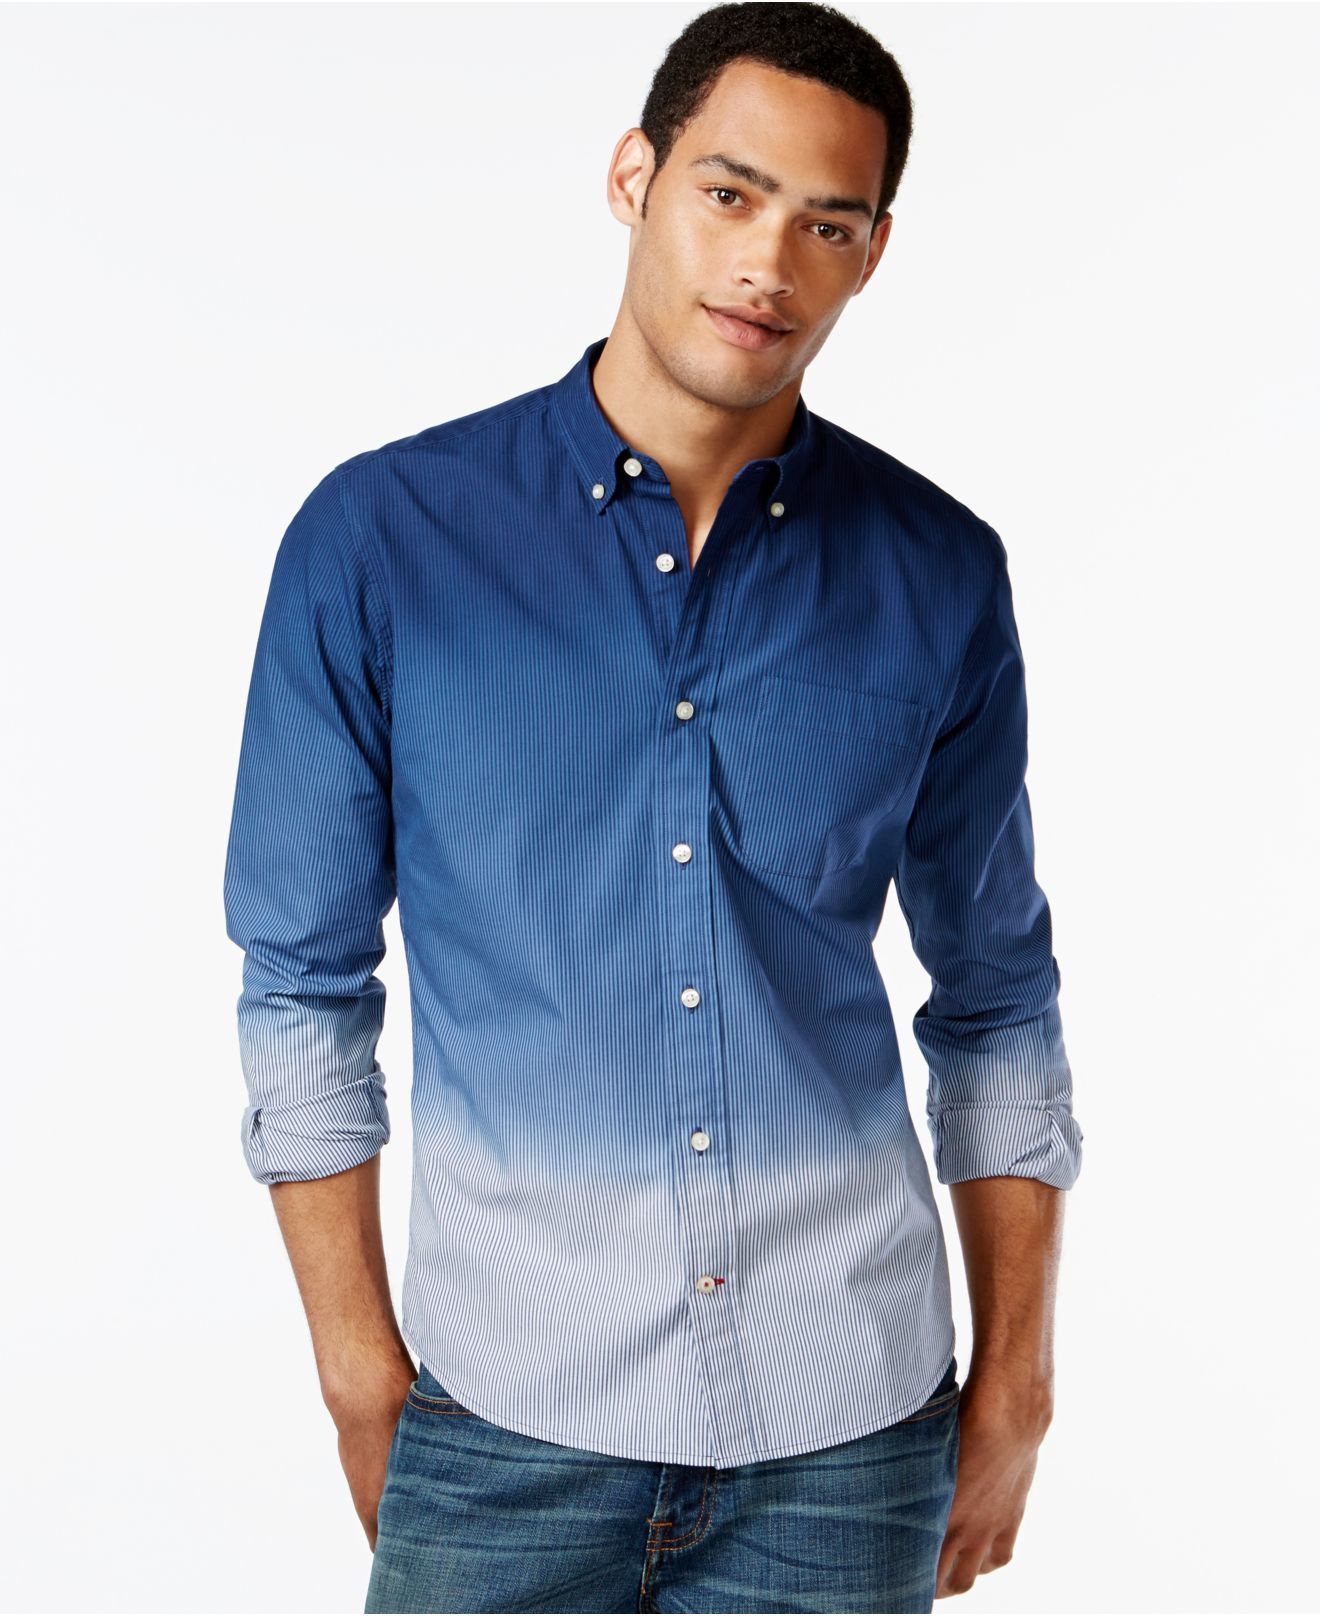 Critter Print Oxford Shirt UK12 - Sales Up to -50% Tommy Hilfiger Free Shipping High Quality ICM02z9jg